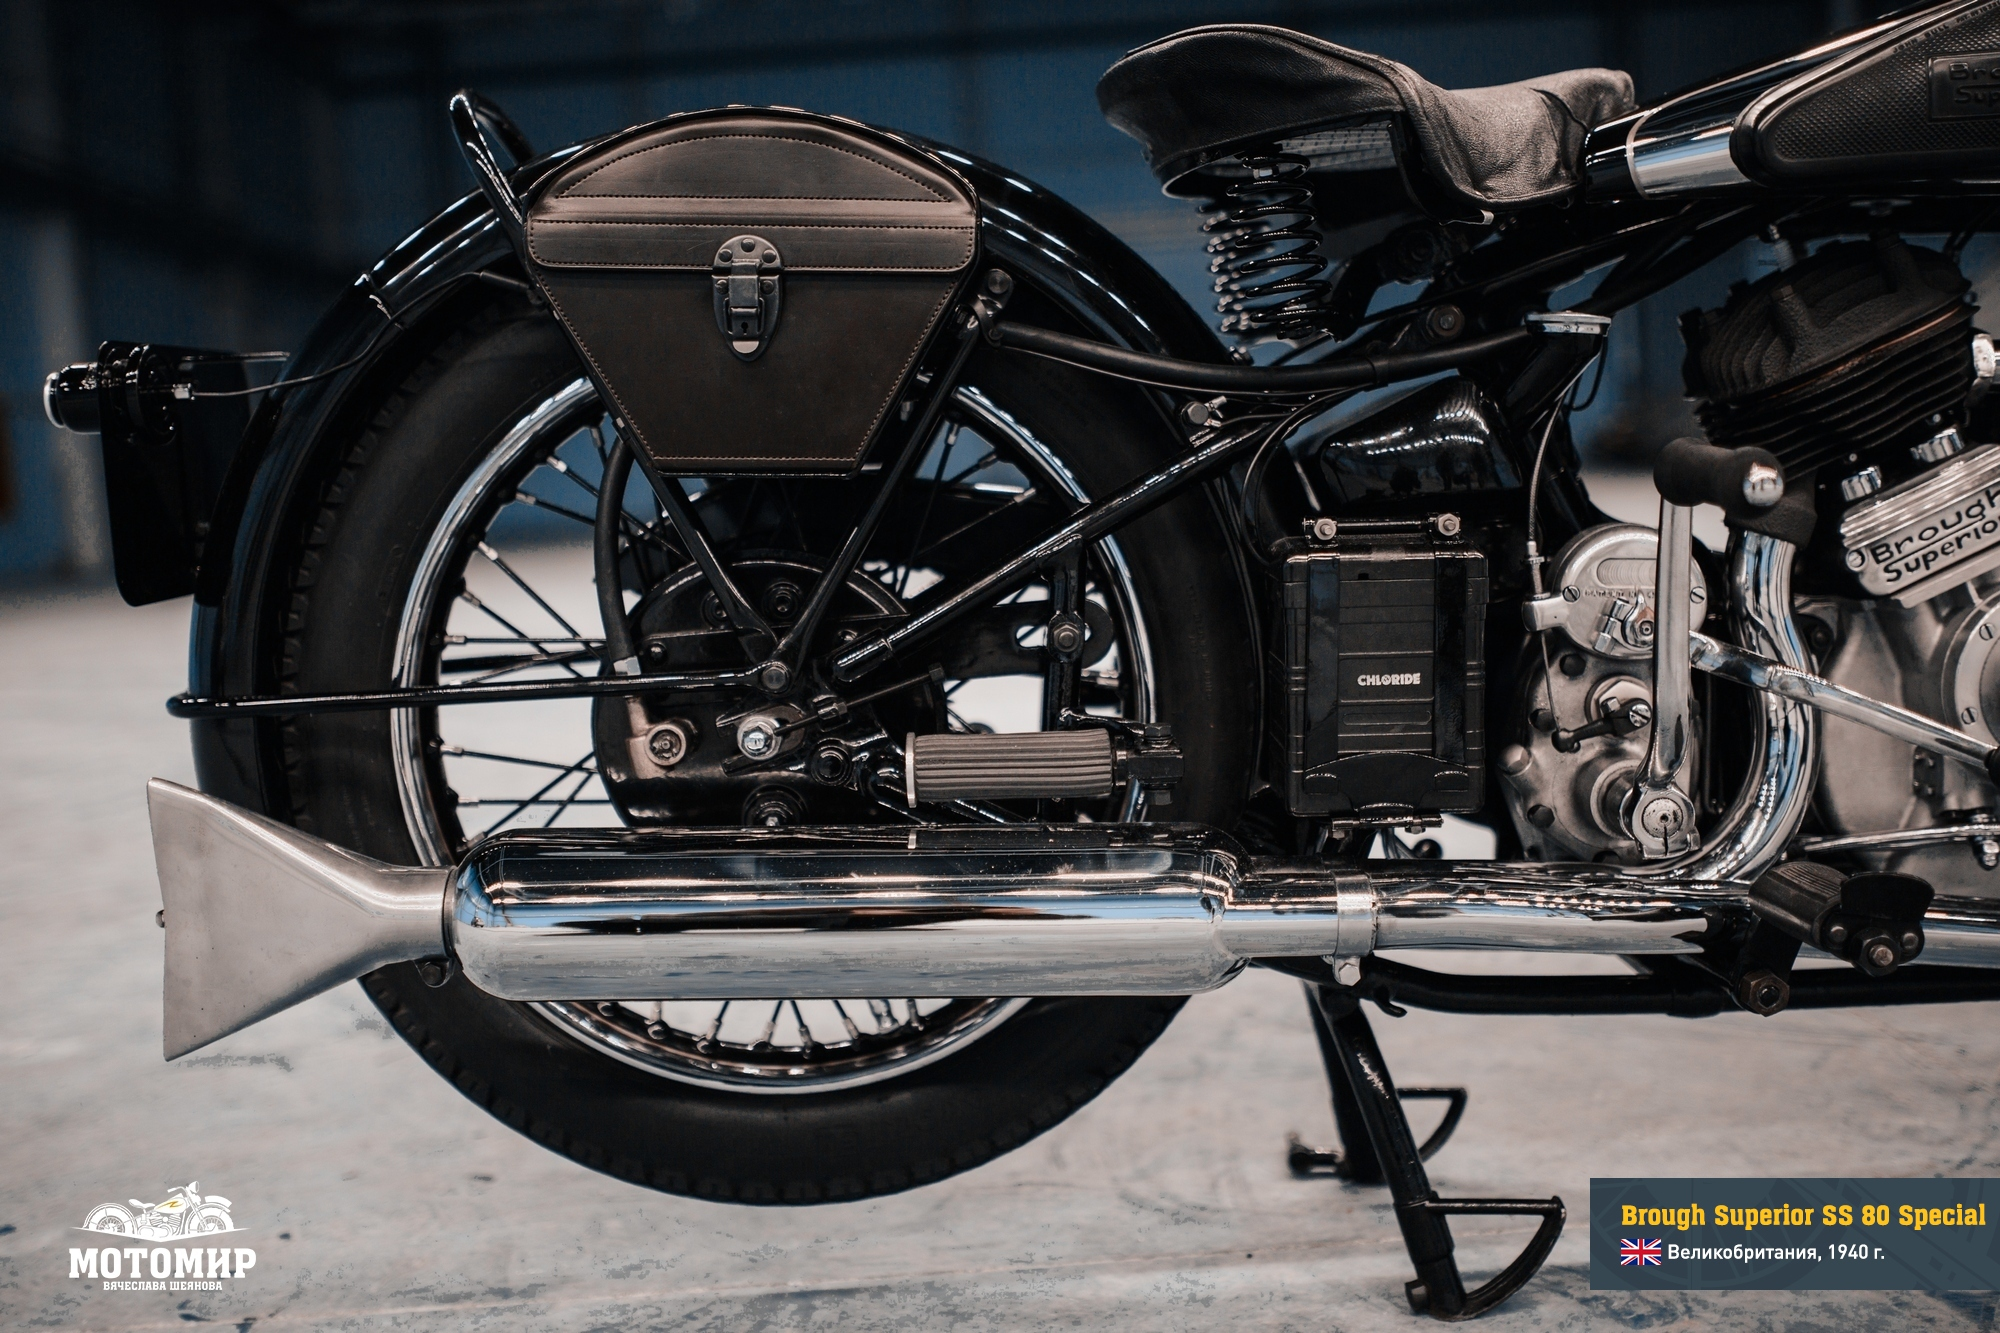 brough-superior-ss-80-201502-web-23